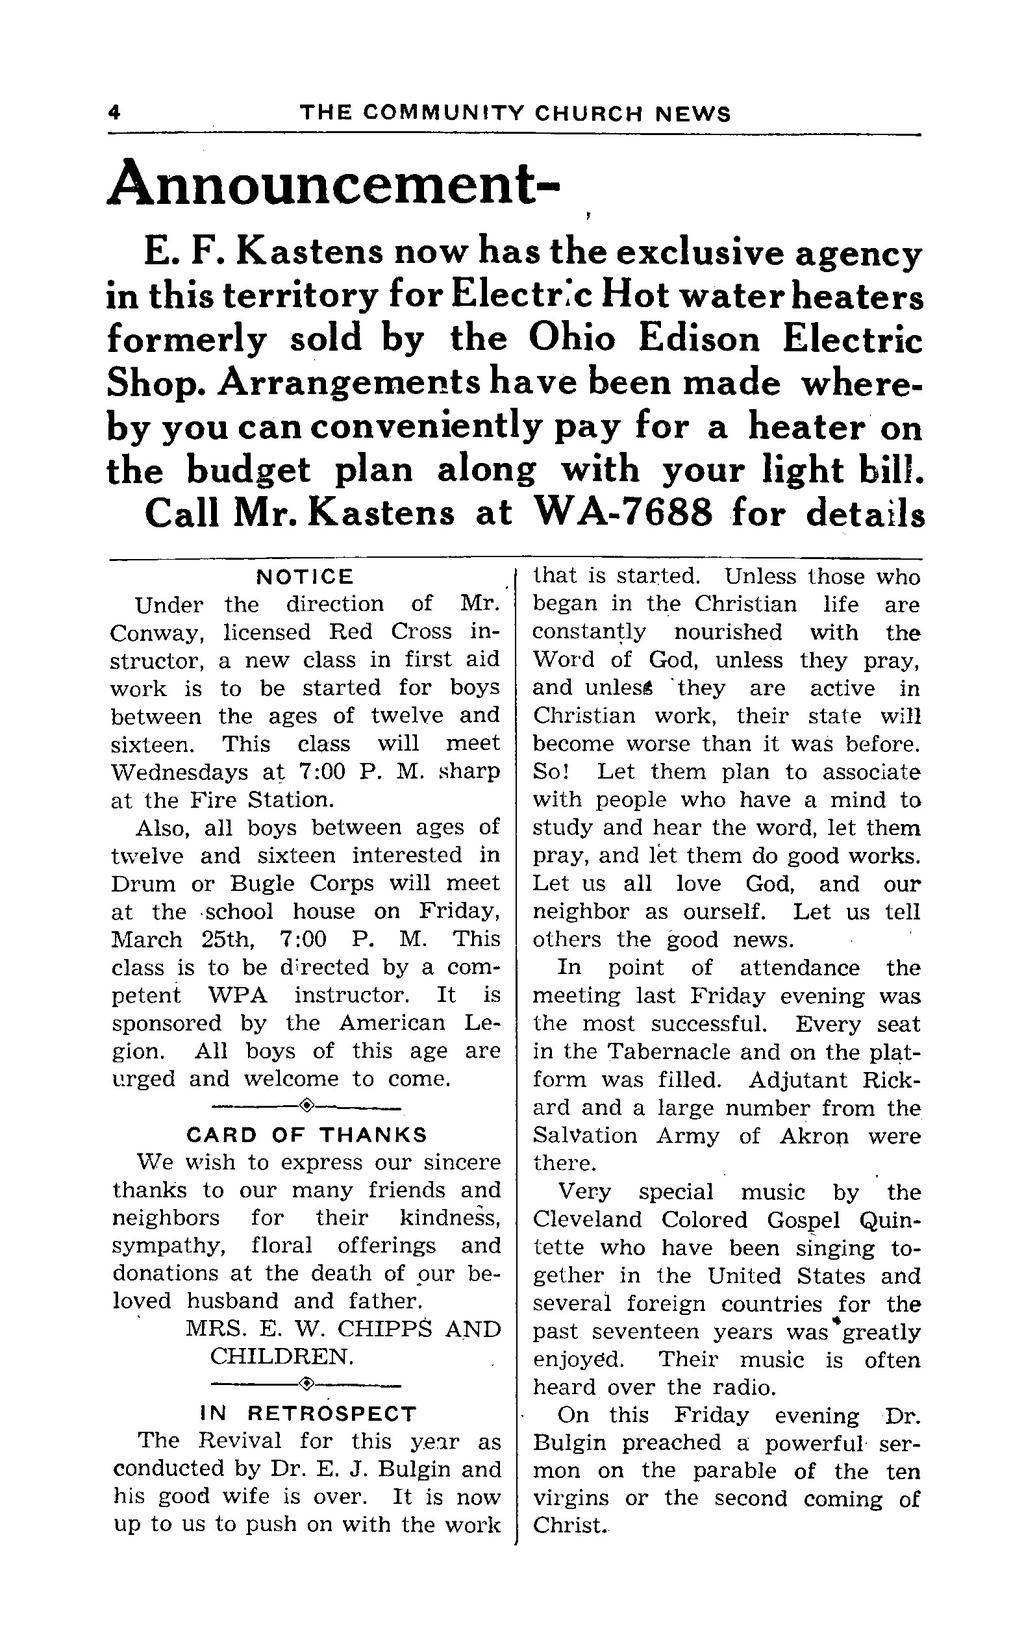 8 THE COIWNIUNITY CHURCH NEWS 3 Announcement- E. F. Kastens now has the exclusive agency in this territory for Electric Hot water heaters formerly sold by the Ohio Edison Electric Shop.